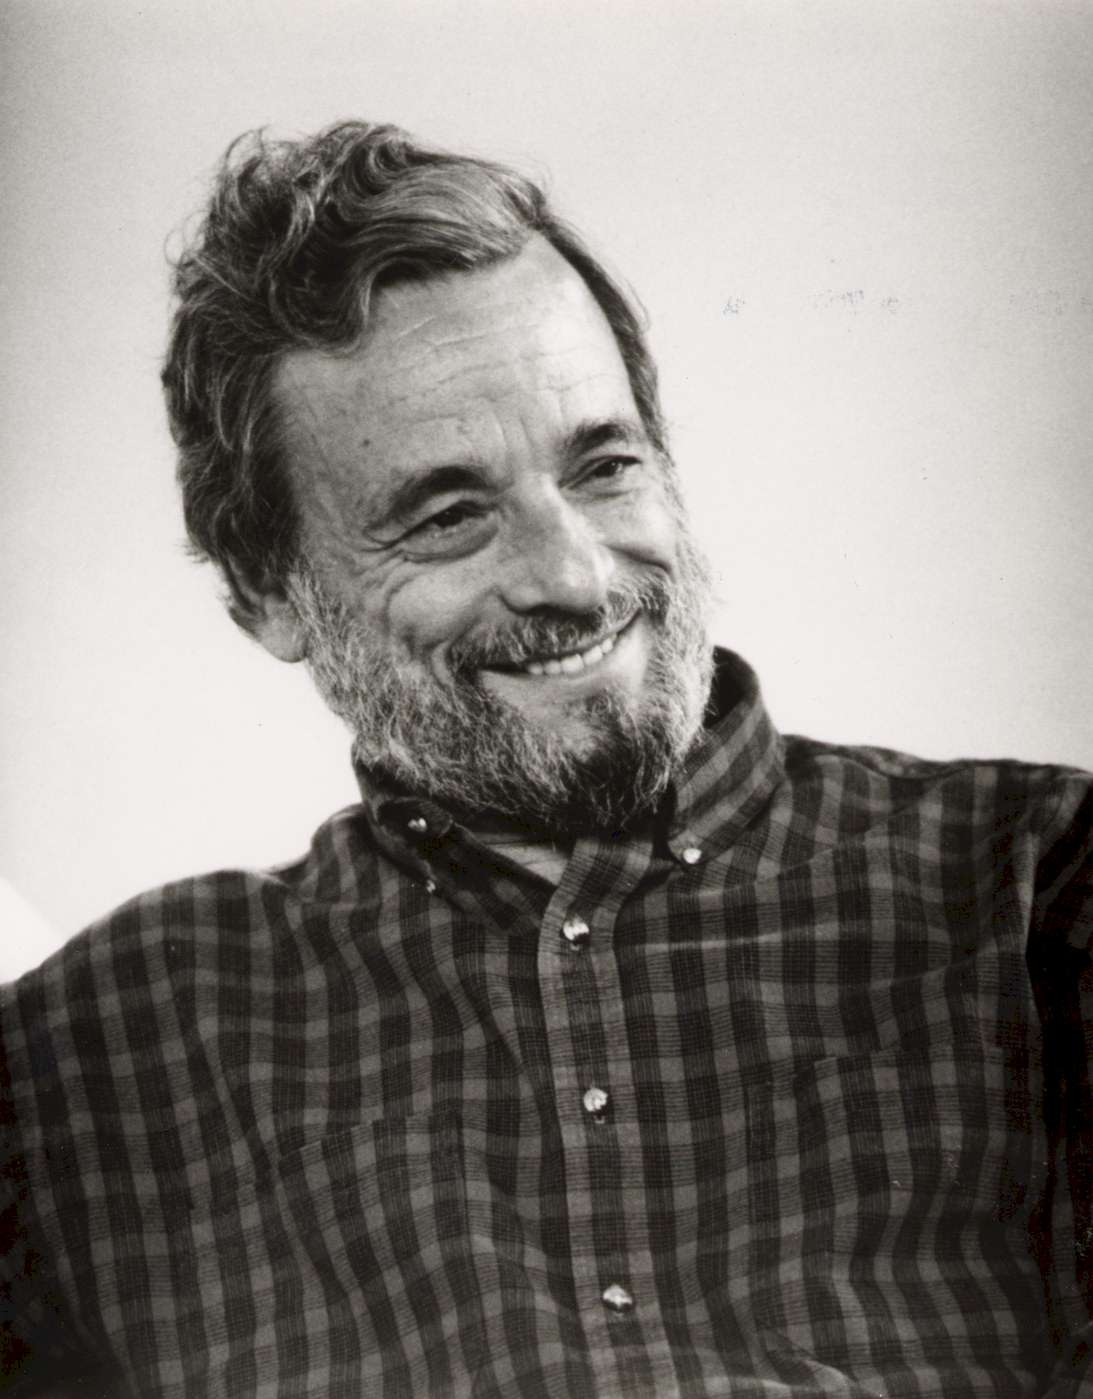 the life and work of stephen sondheim Stephen sondheim: a life (1998), mark eden horowitz's sondheim on music: minor details and major decisions (2003), and steve swayne's how sondheim found his sound (2007) secrest's book explores sondheim's personal life in great detail, with anecdotal references to.